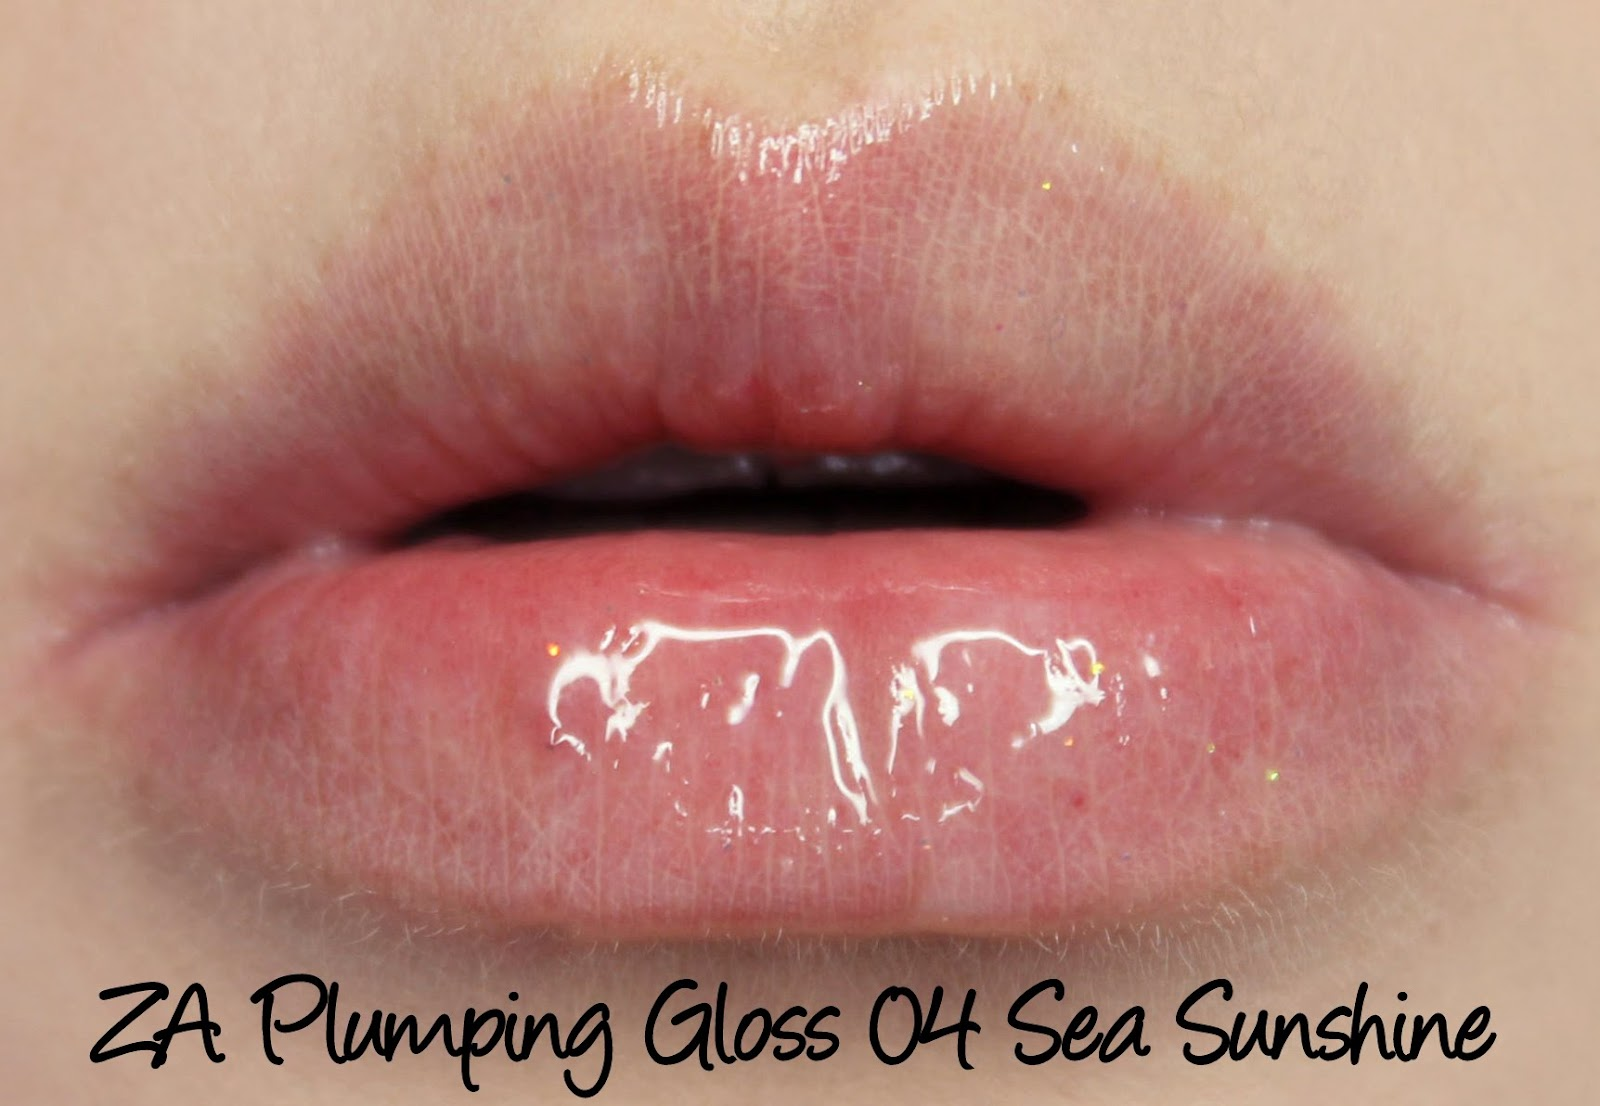 ZA Plumping Lip Gloss 04 Sea Sunshine swatch & review